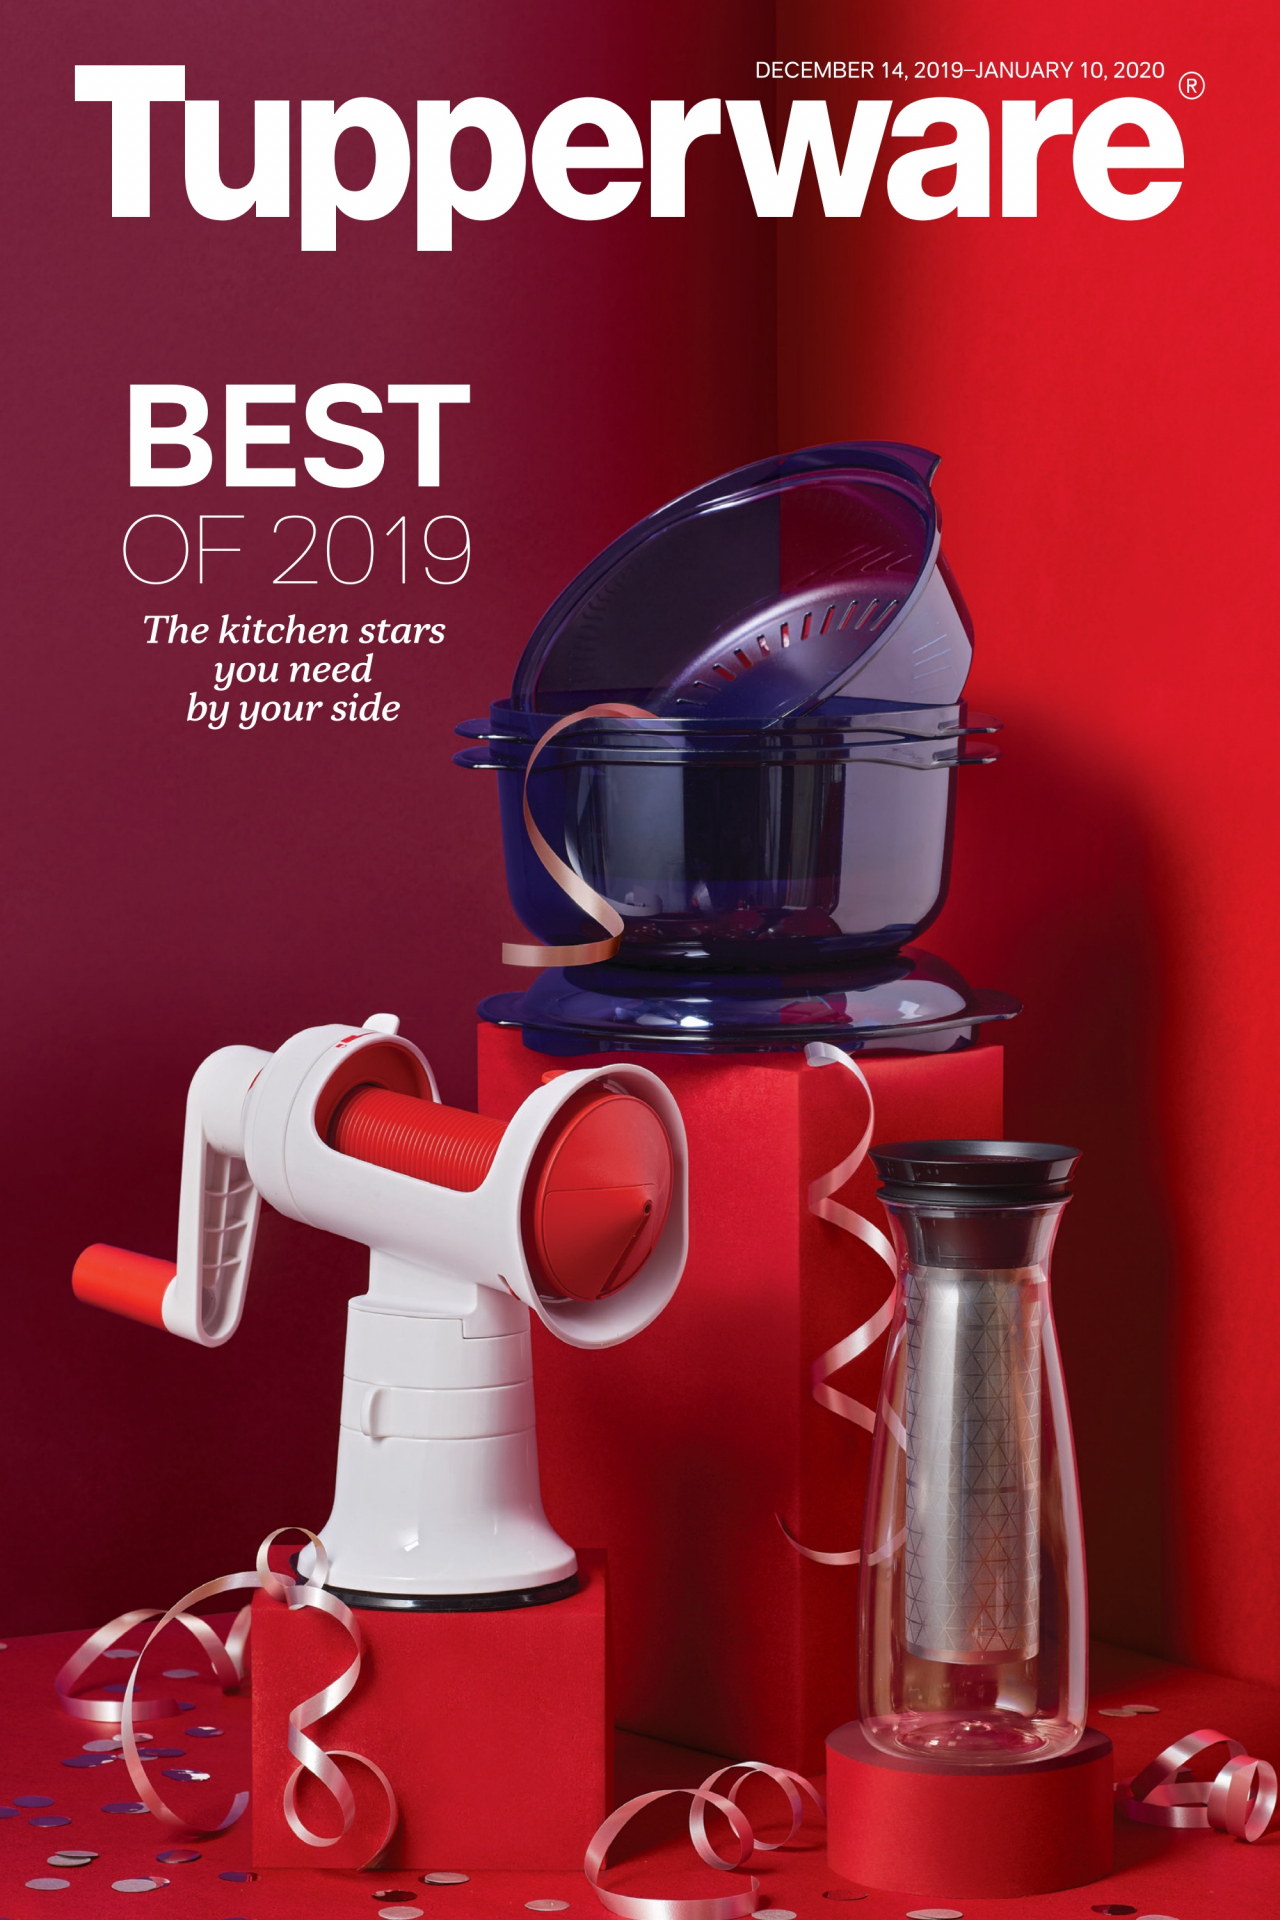 Tupperware Brochure – Valid Dec 14, 2019 - Jan 10, 2020